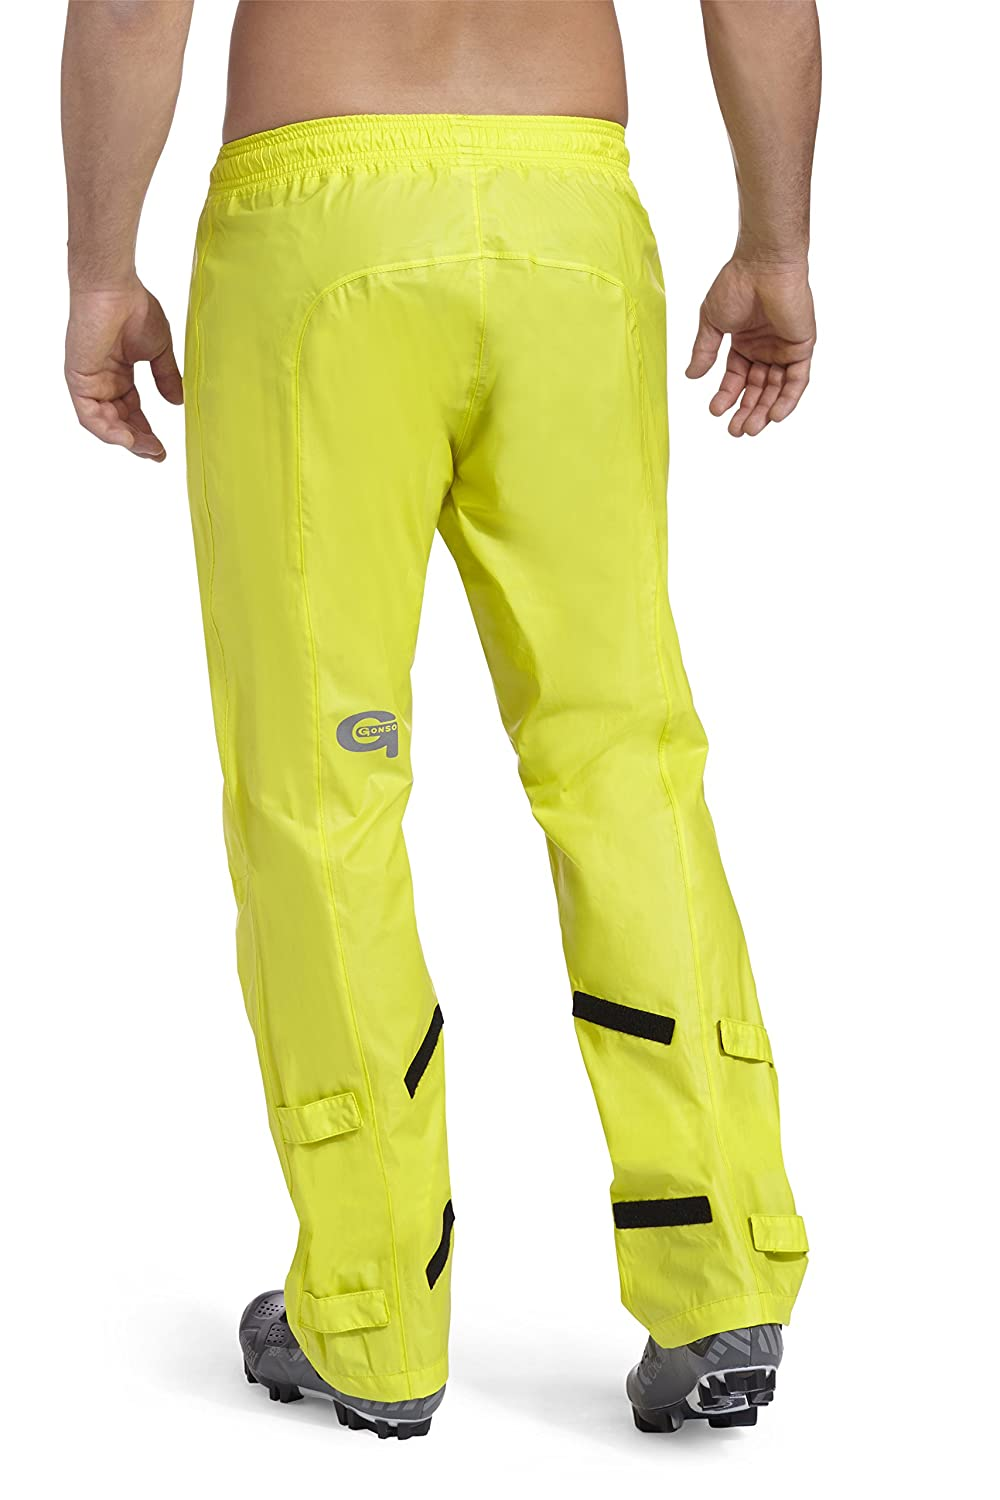 Gonso Pular Mens All-Weather Trousers